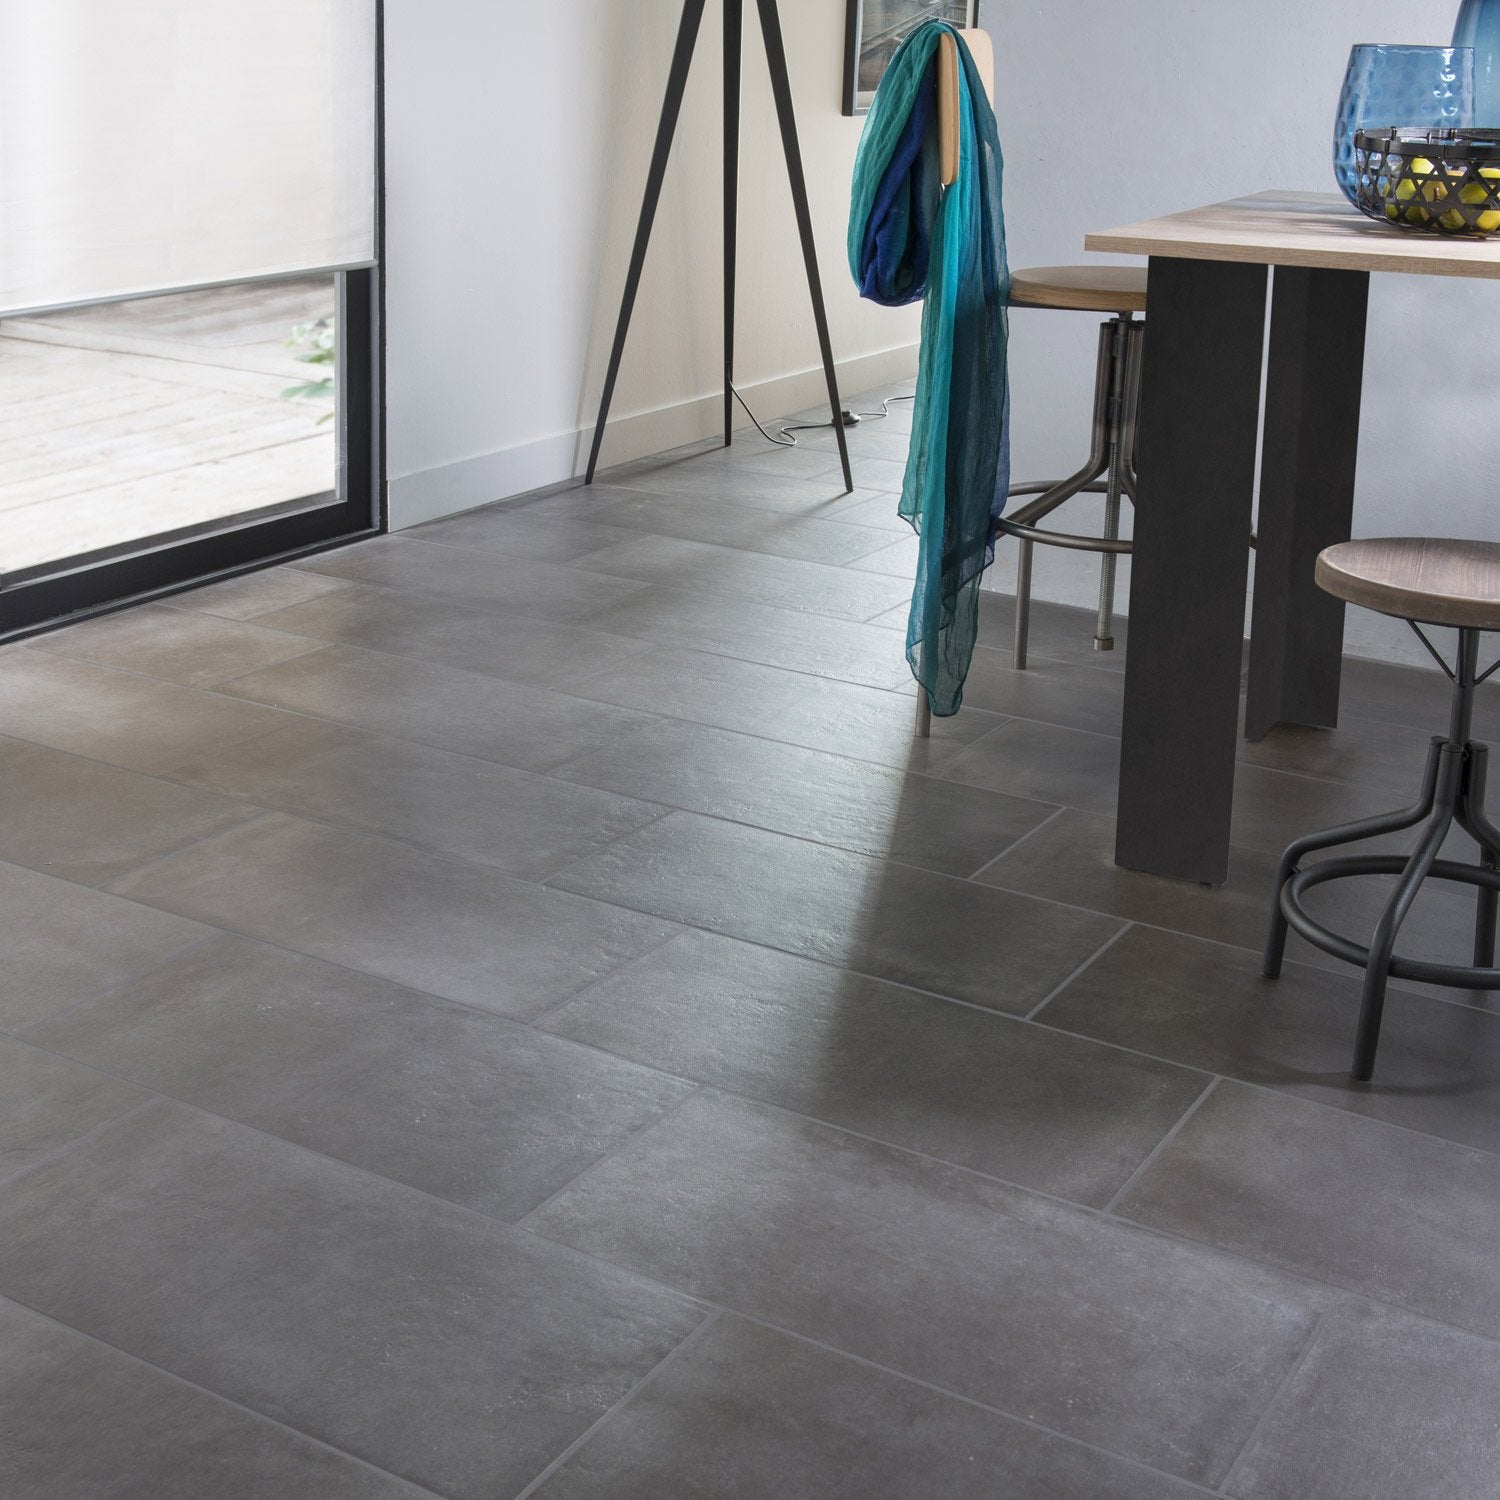 Carrelage sol et mur anthracite effet b ton time x cm leroy merlin for Cuisine carrelage gris anthracite